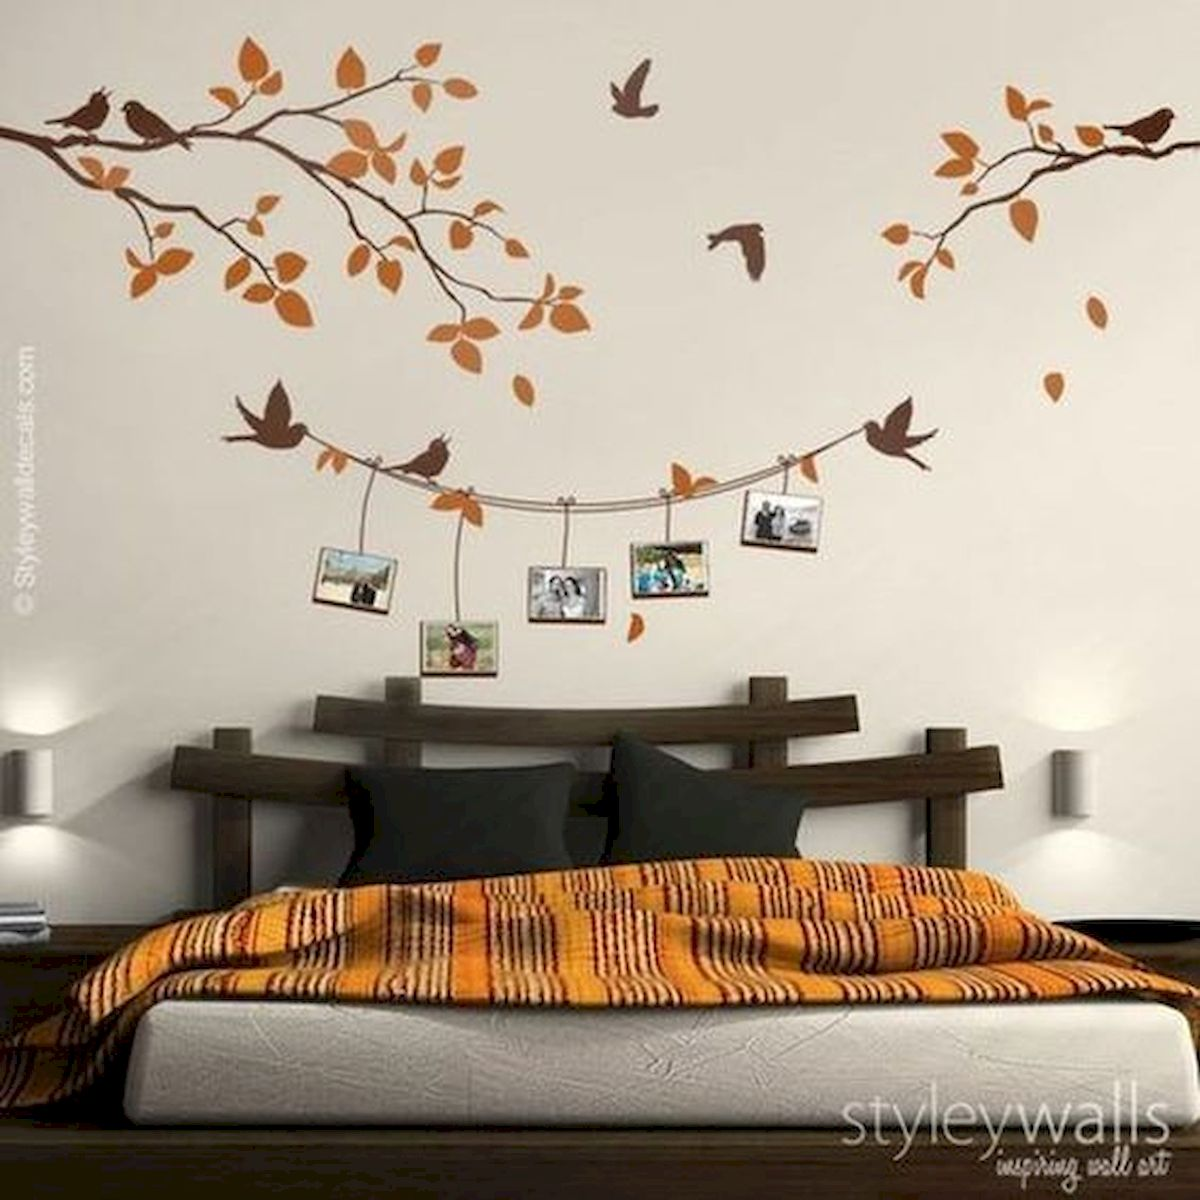 44 Awesome Wall Painting Ideas To Decorate Your Home (3)